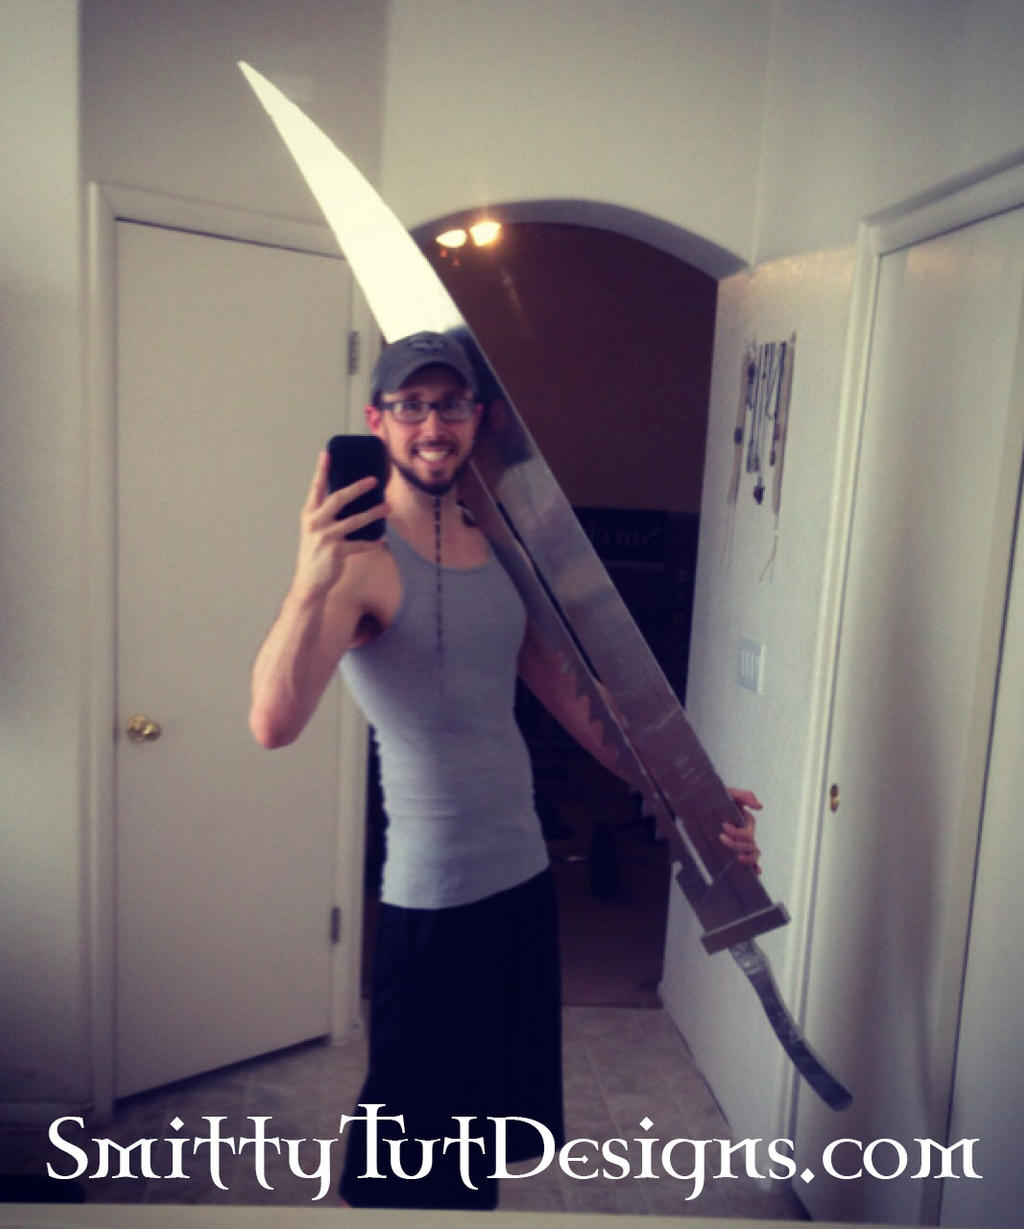 6.5 Foot Tall- Fully Aluminum Pyramid Head Sword